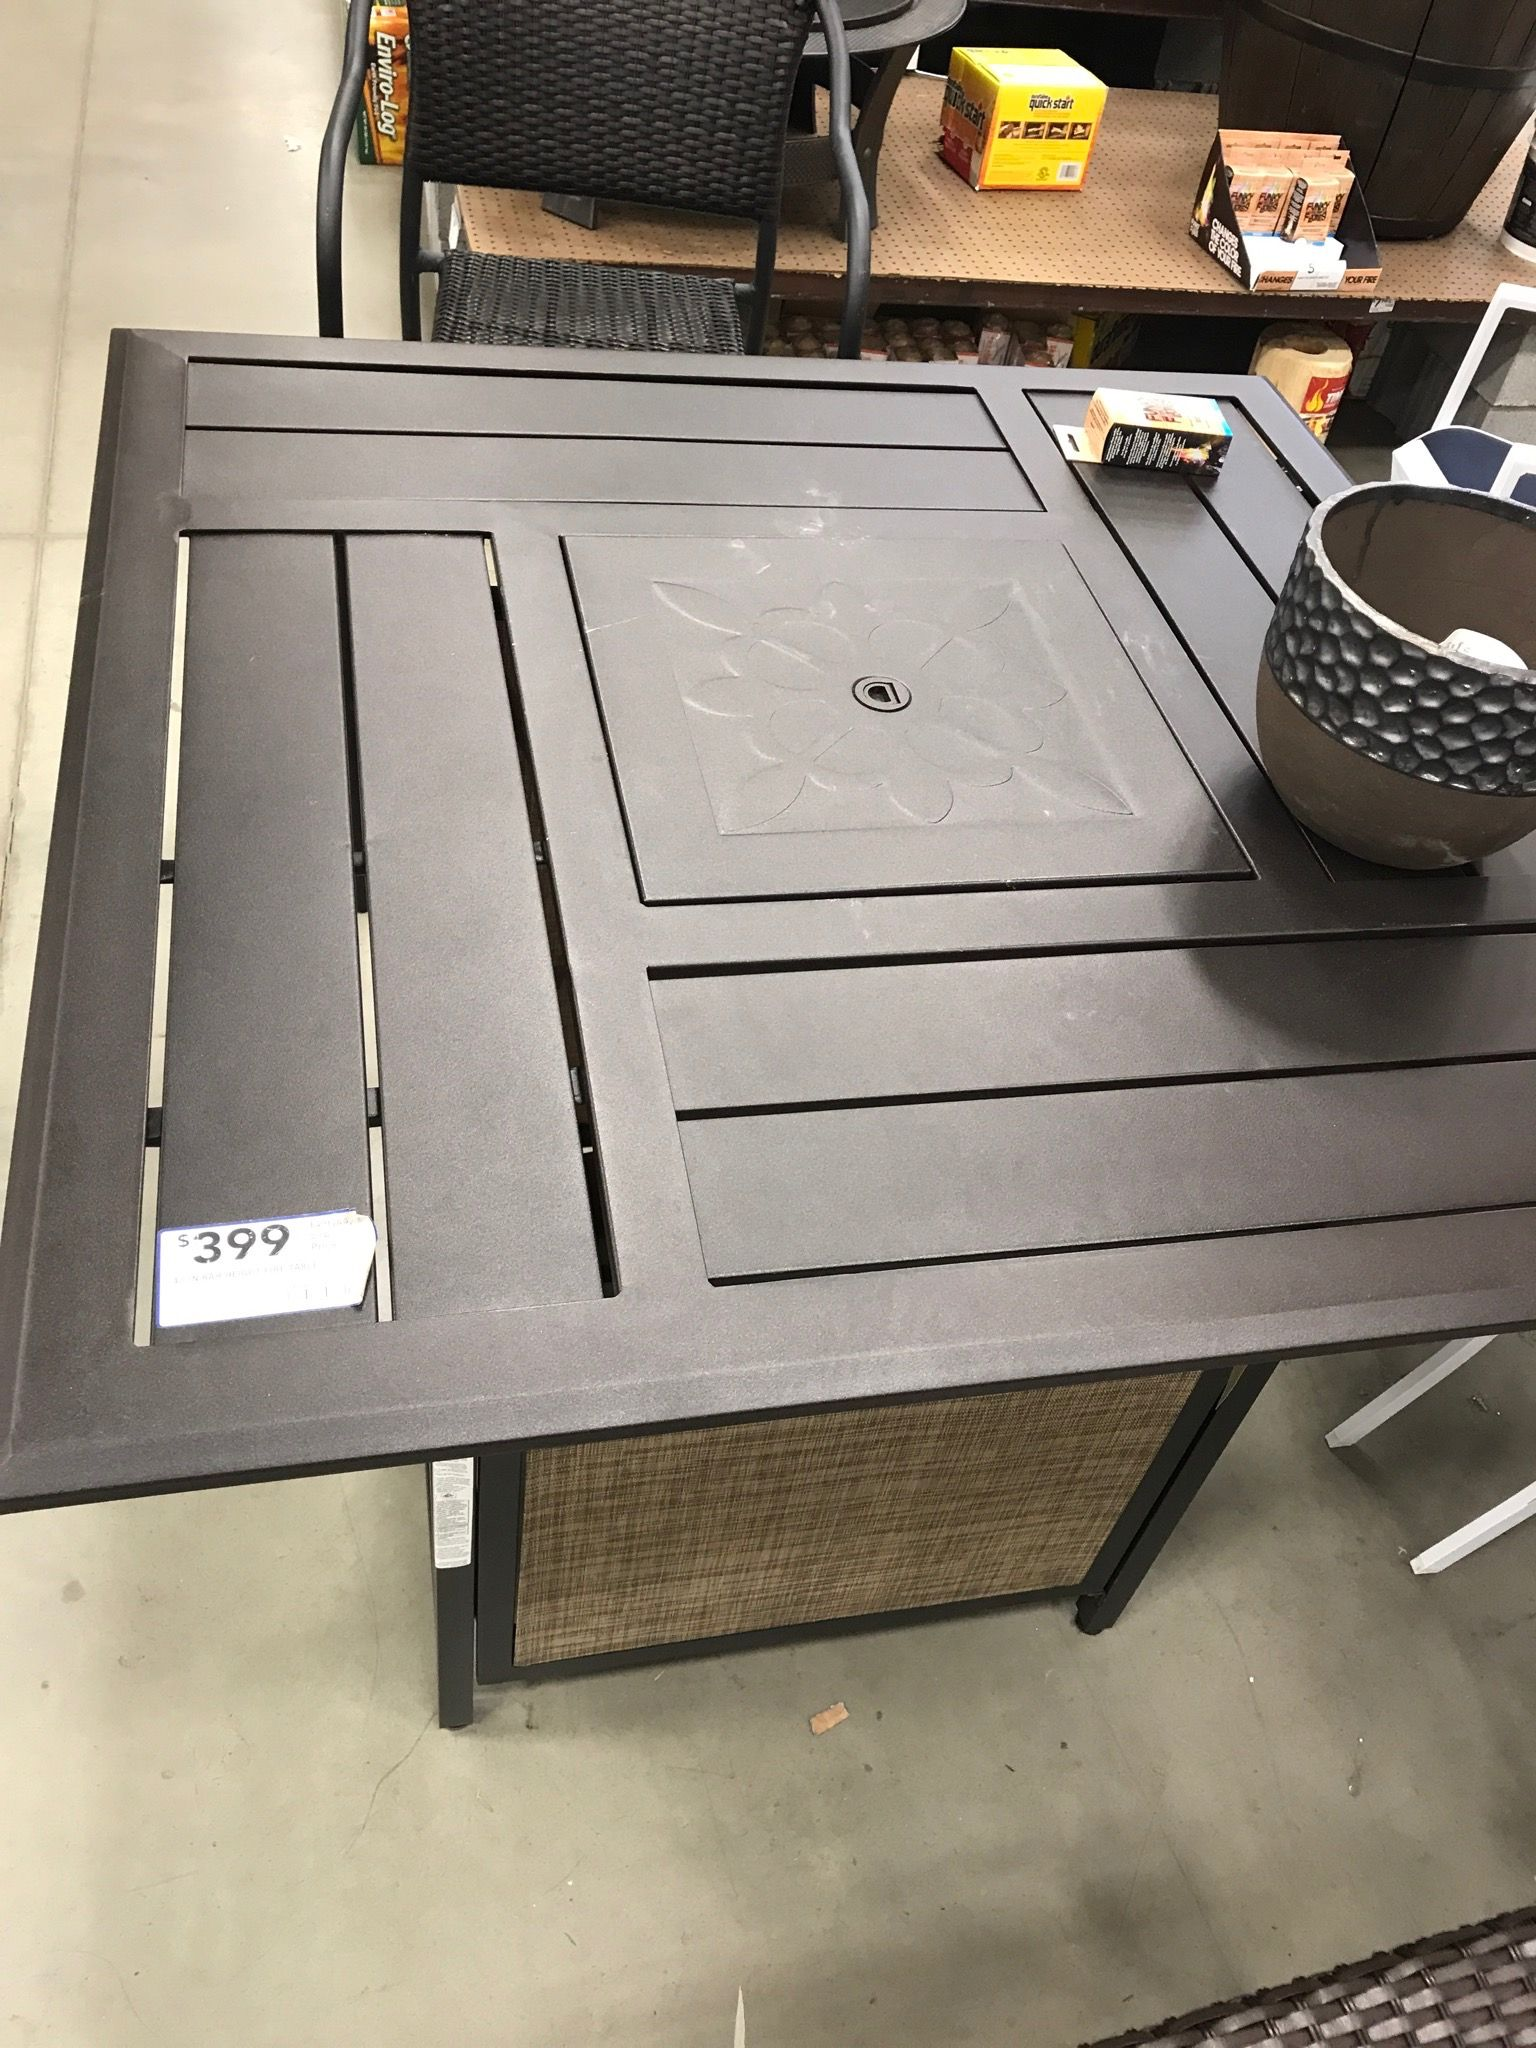 Lowes Fire Pit Table 399 Fire Pit Grate Table Fire Pit Table